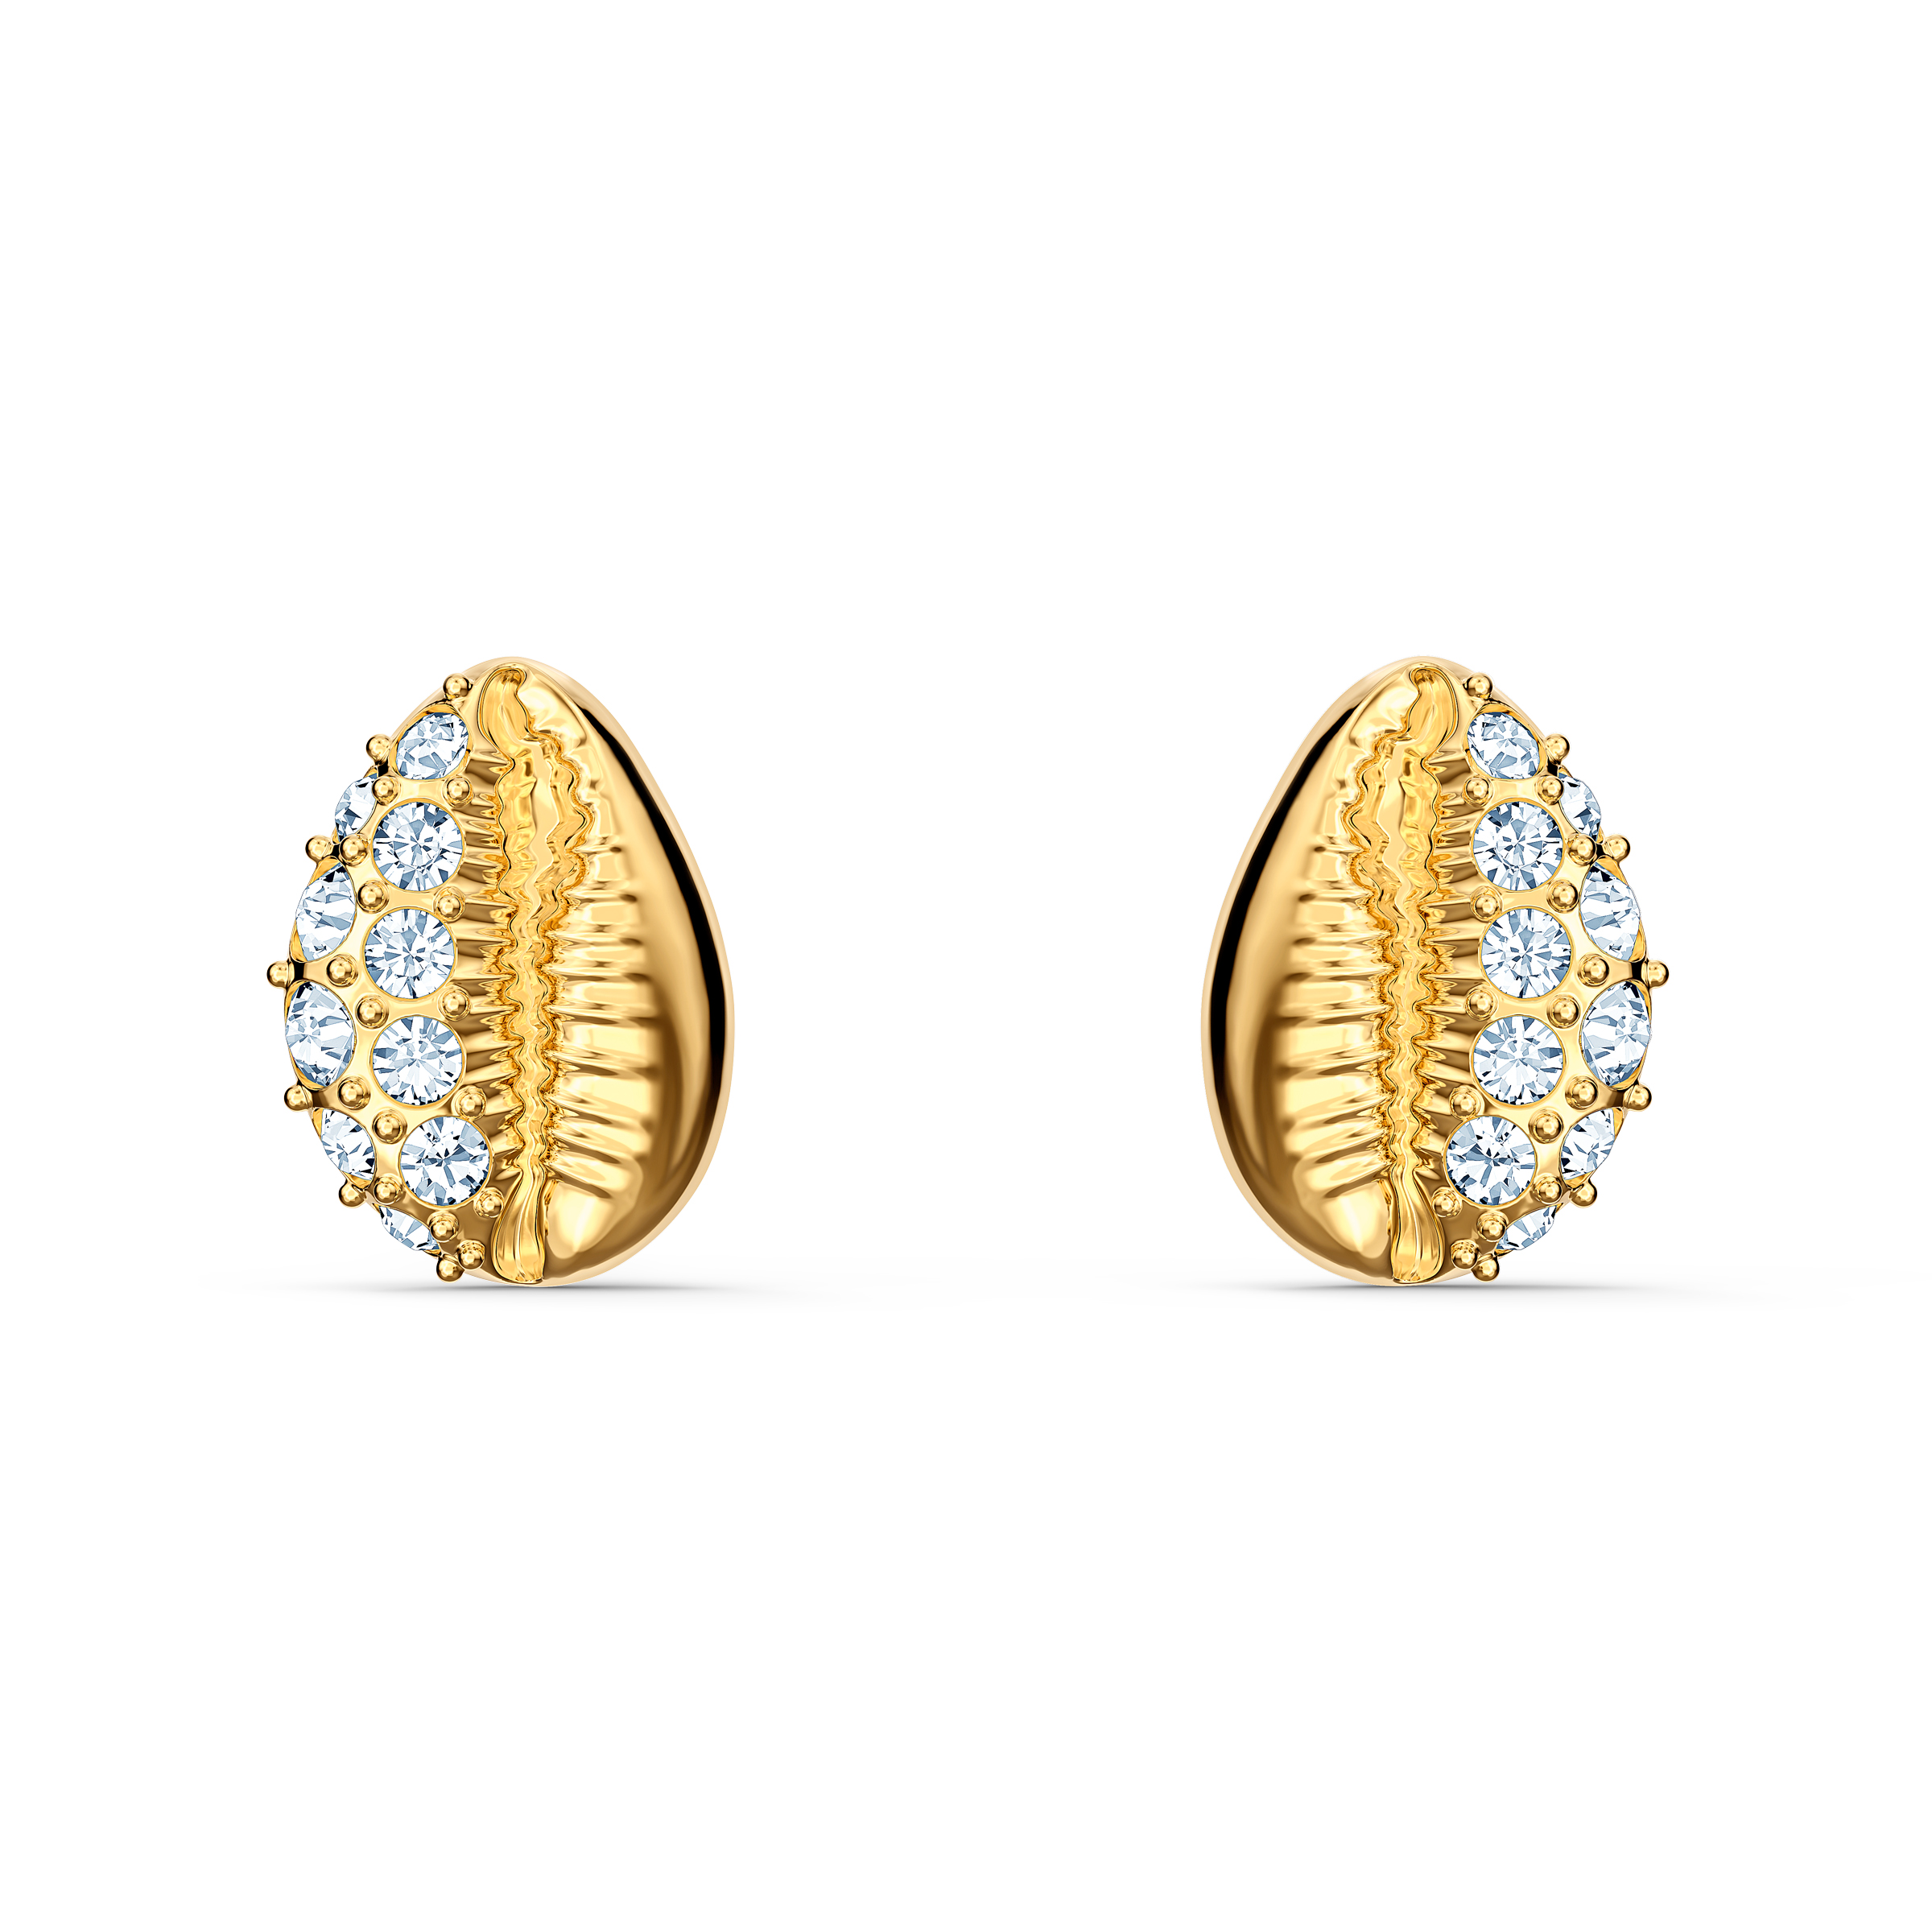 Dazzling gold shell stud earrings with Swarovski crystals.